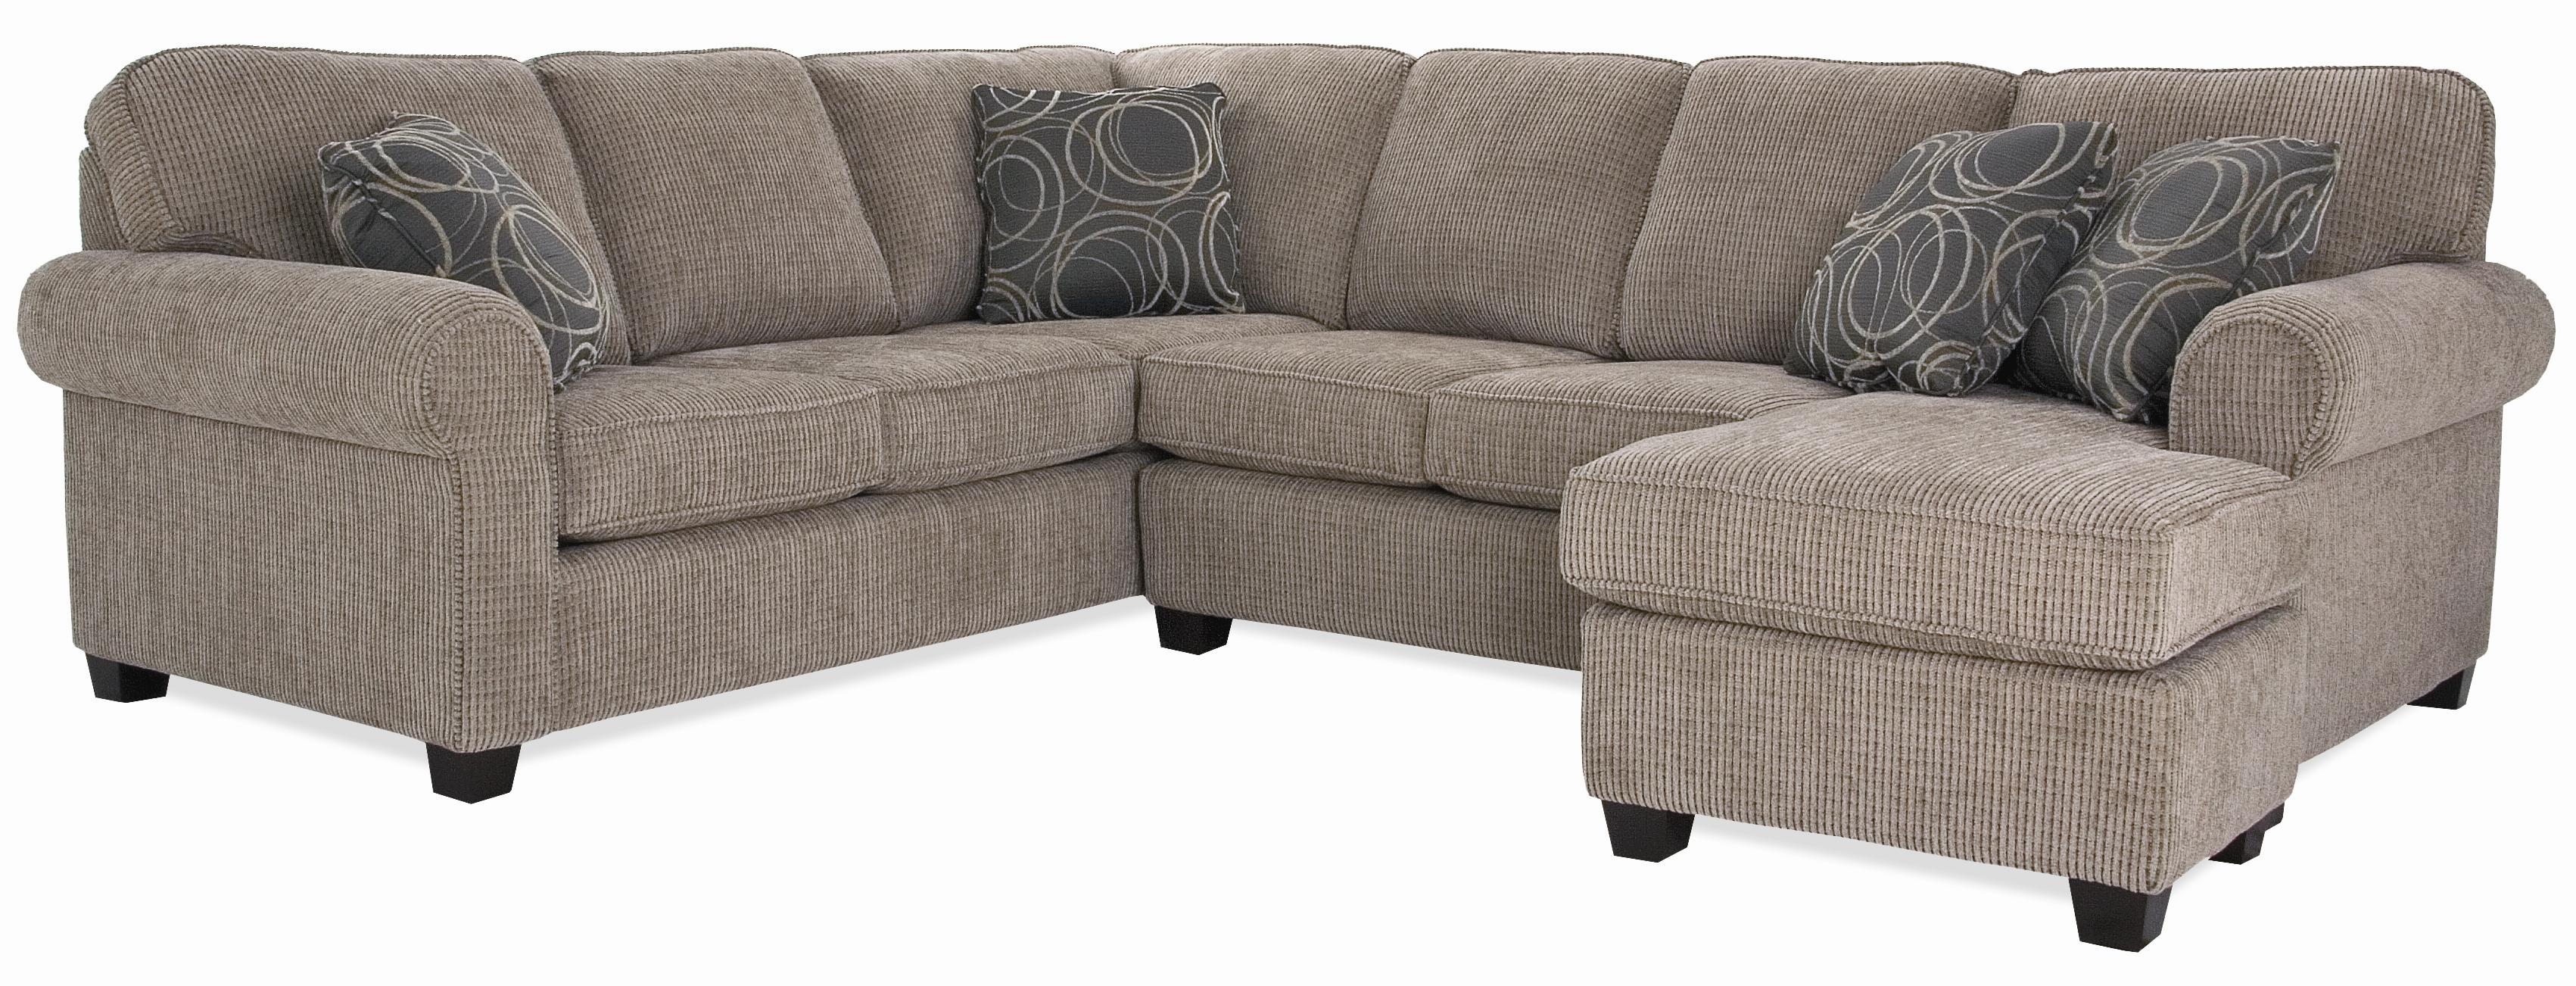 2576 Sectional by Decor-Rest at Wayside Furniture